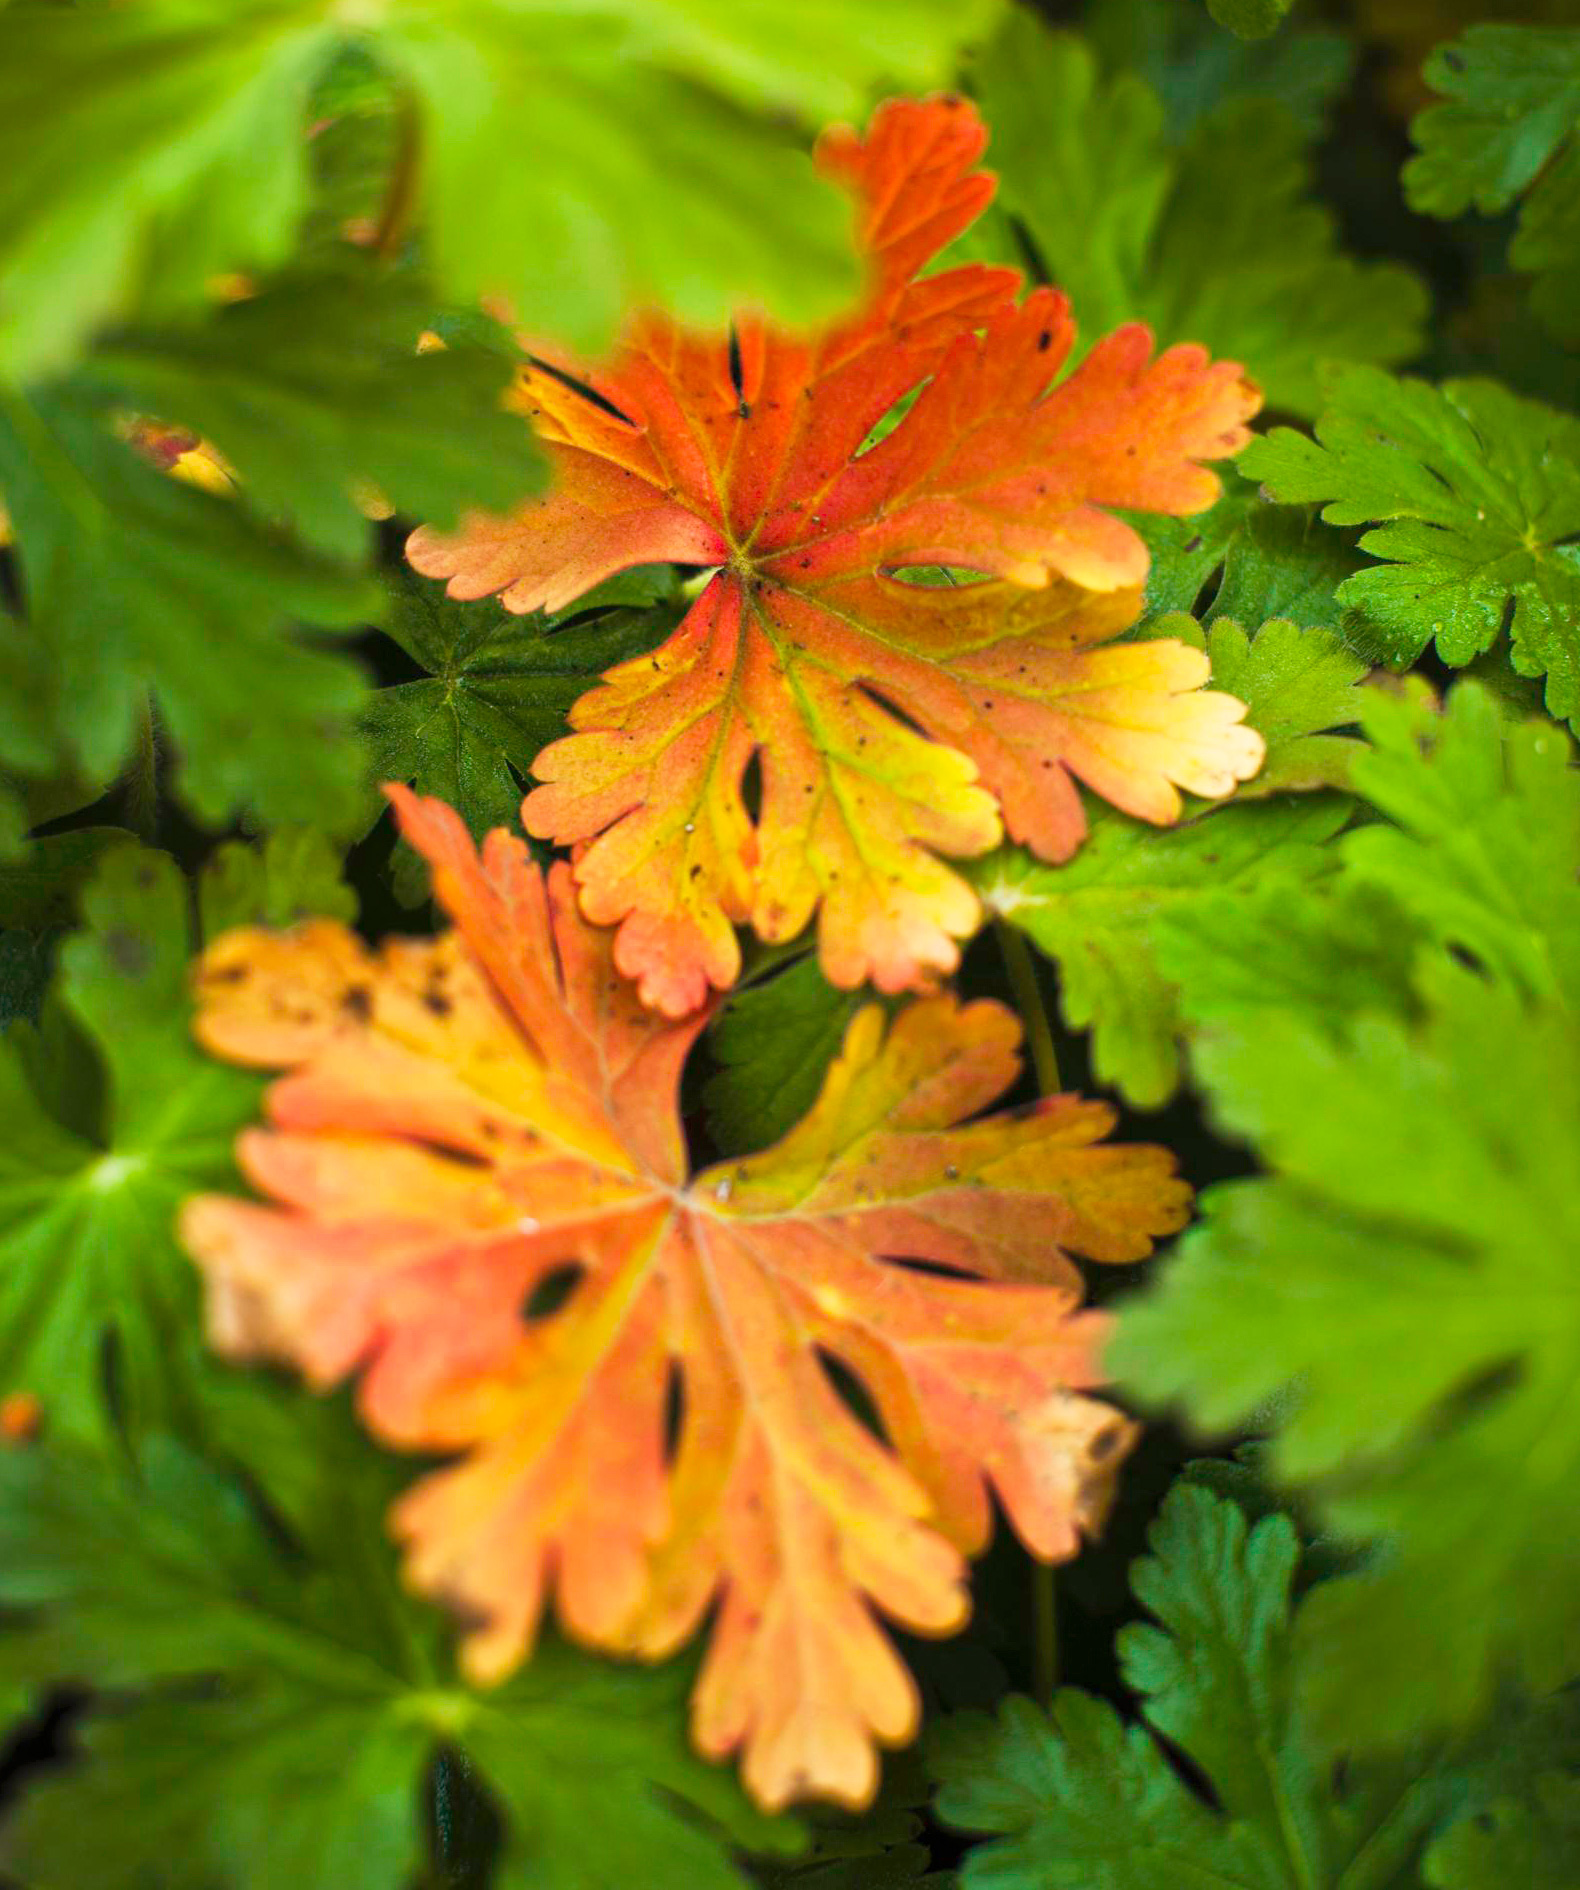 Fall garden ideas: Perennials